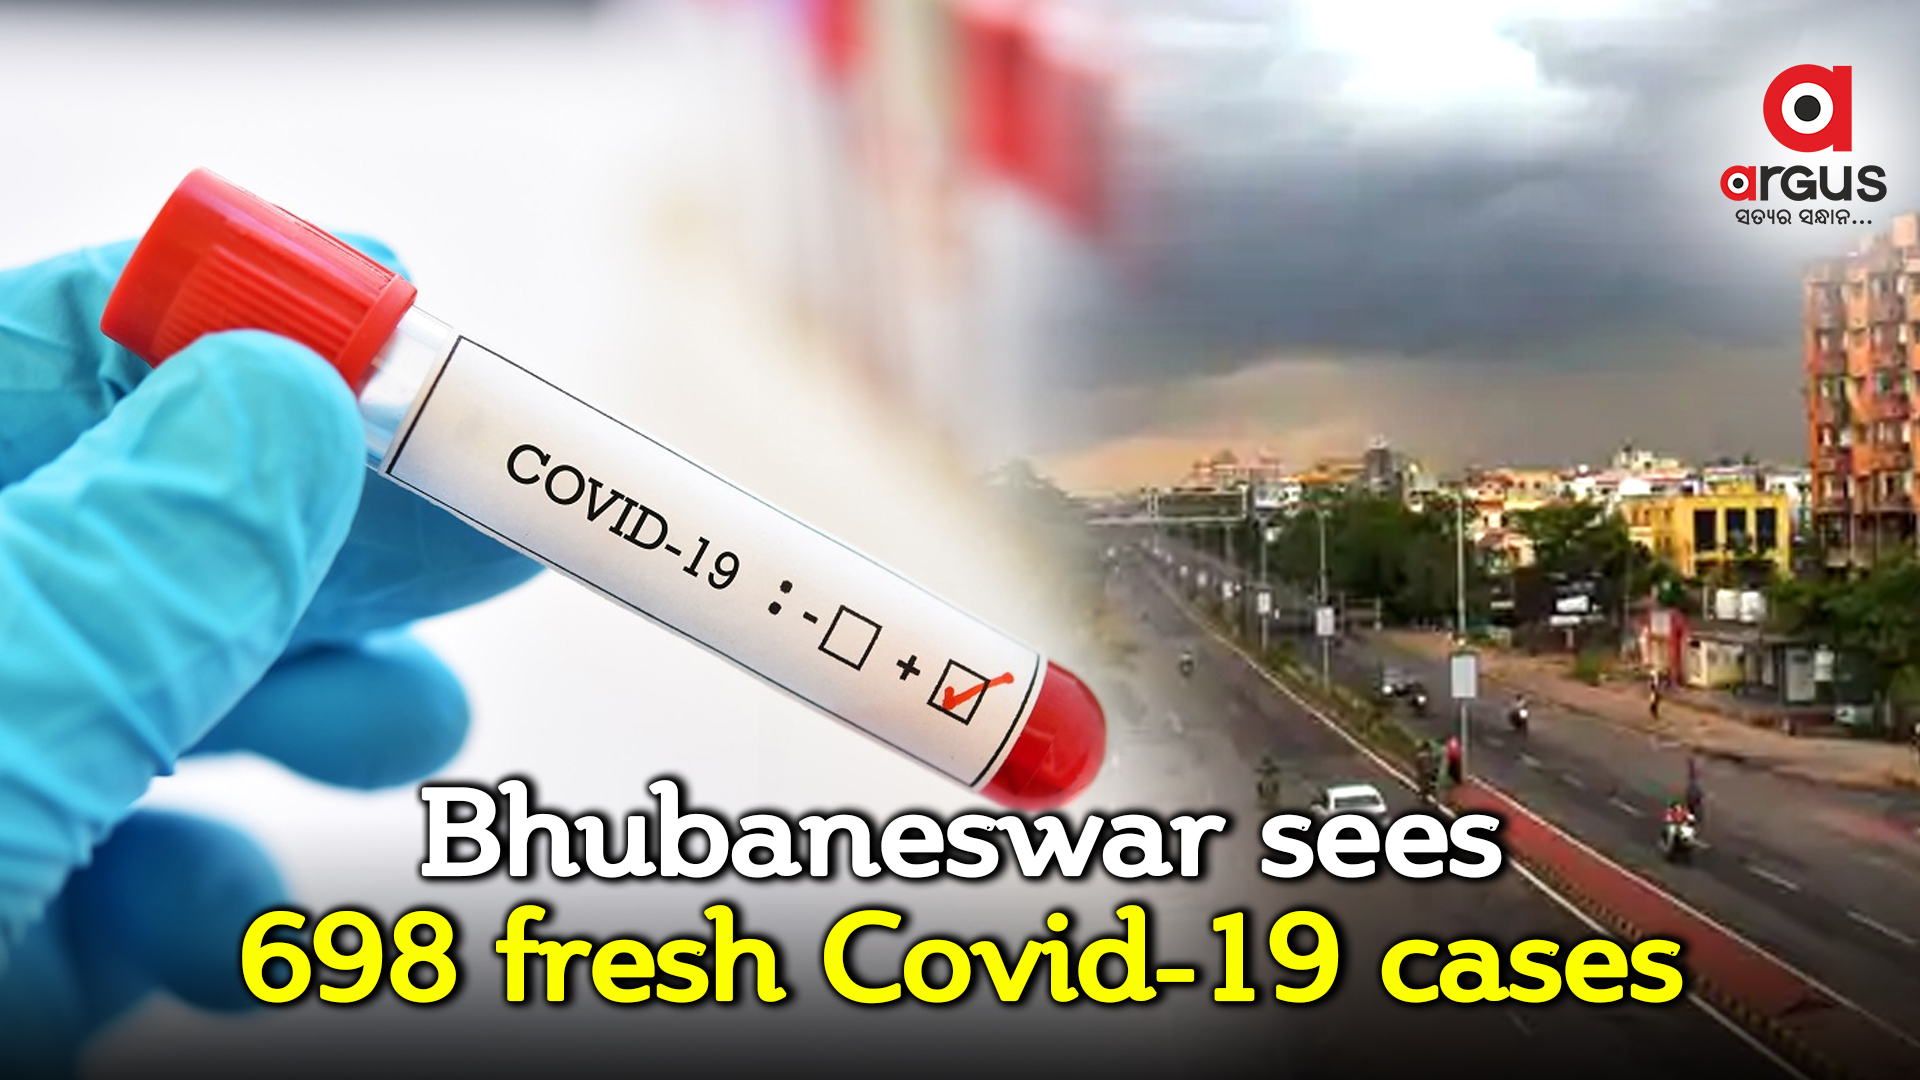 Bhubaneswar reports 698 new Covid-19 cases; Active cases stand at 4417